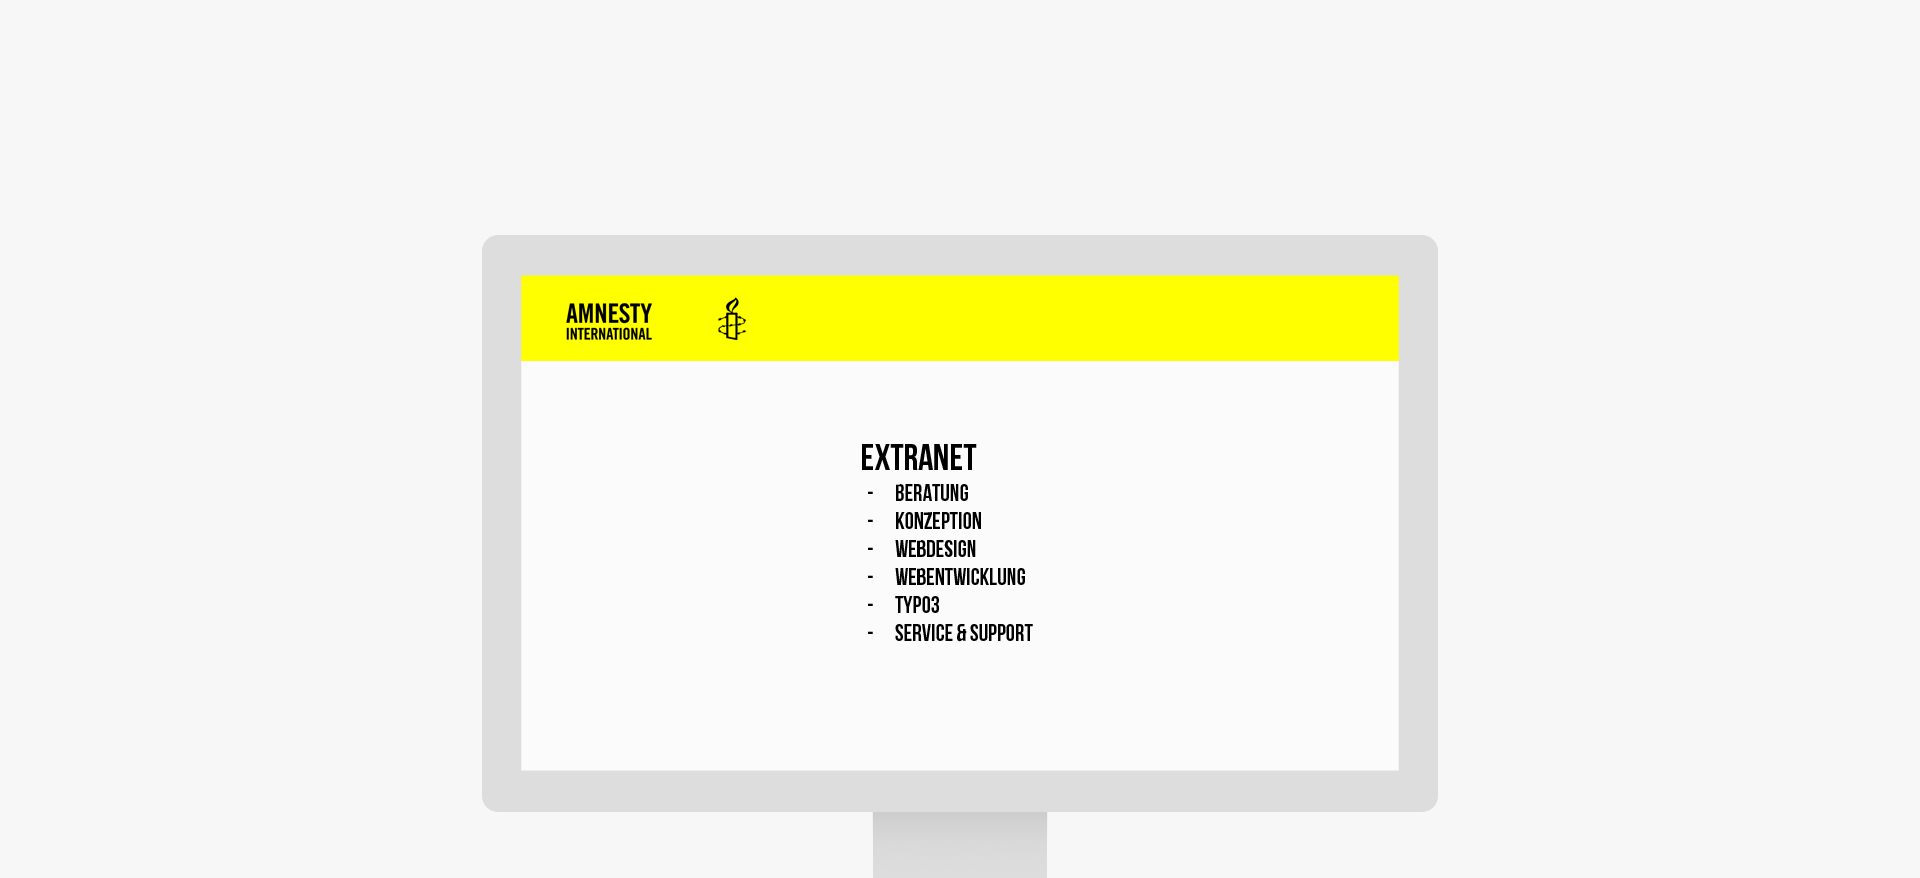 Amnesty International Extranet